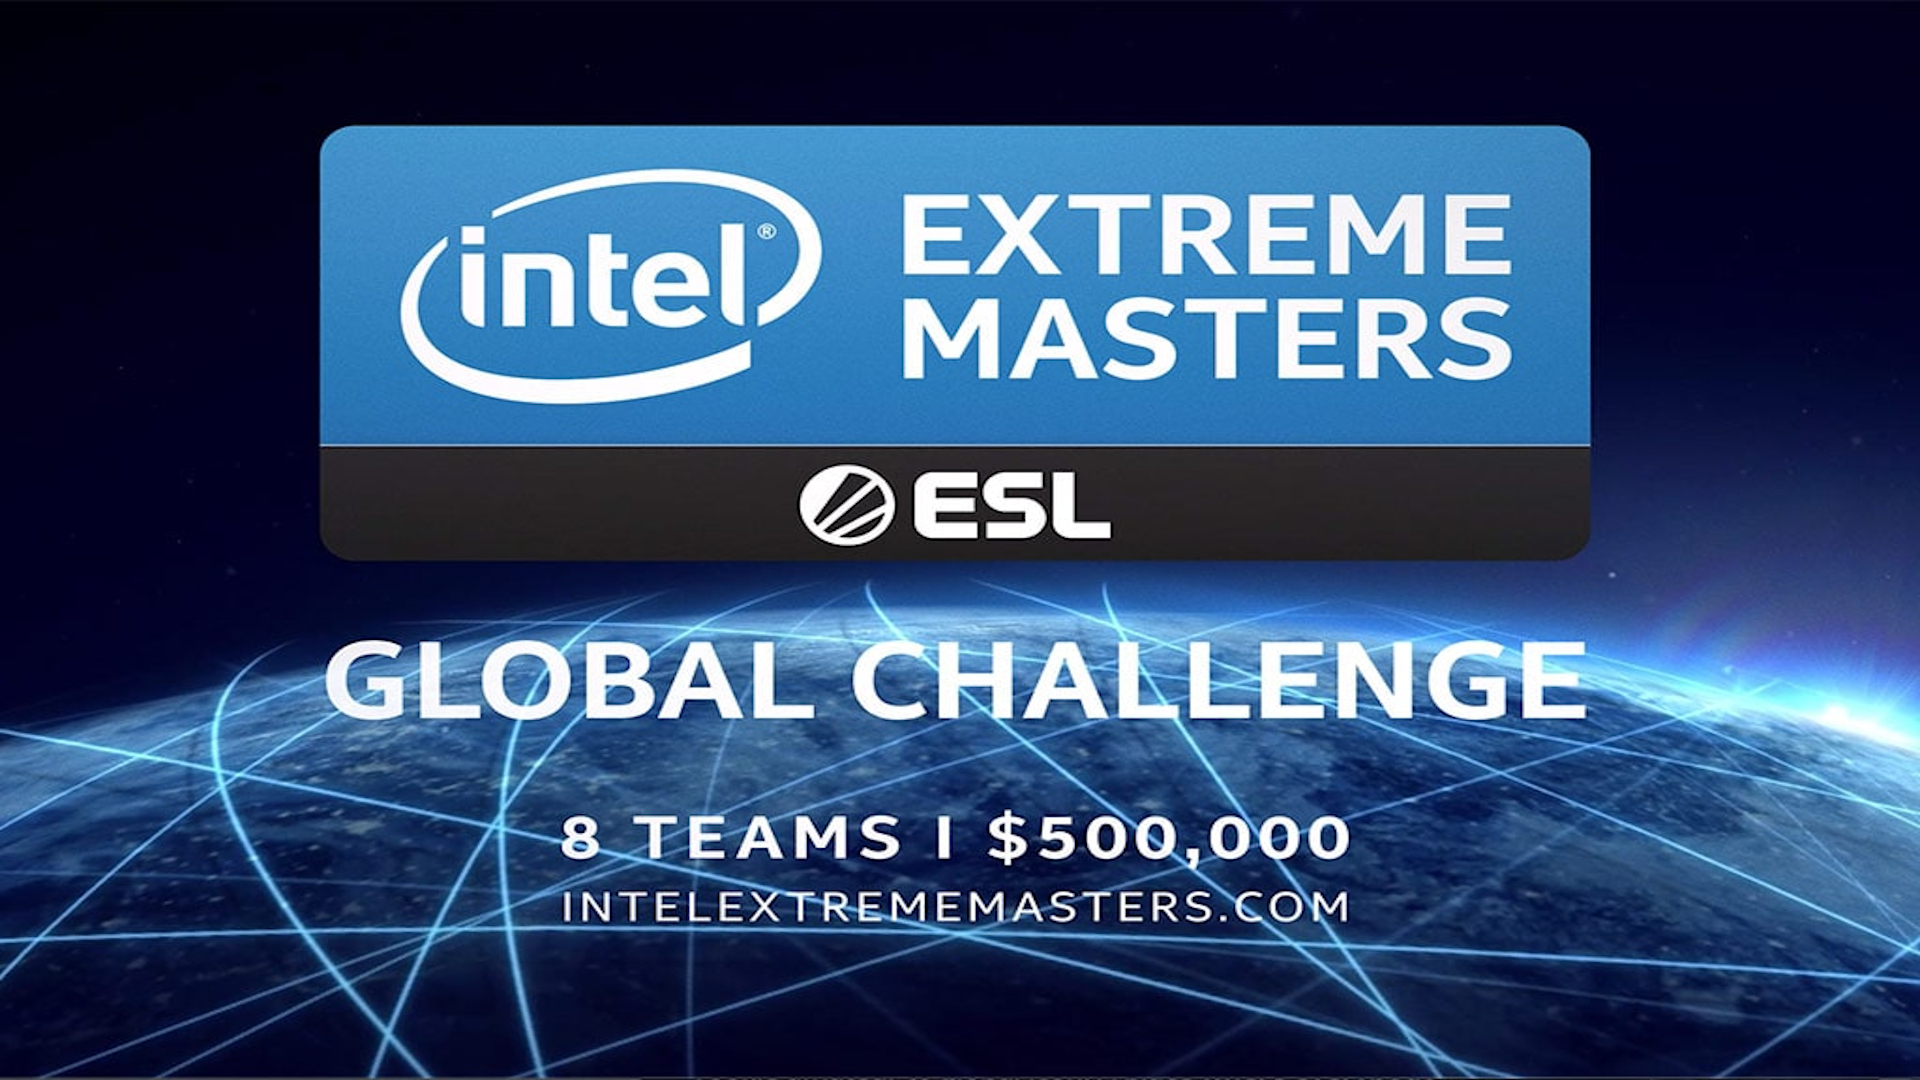 Grpahic for ESL's IEM Global Challenge